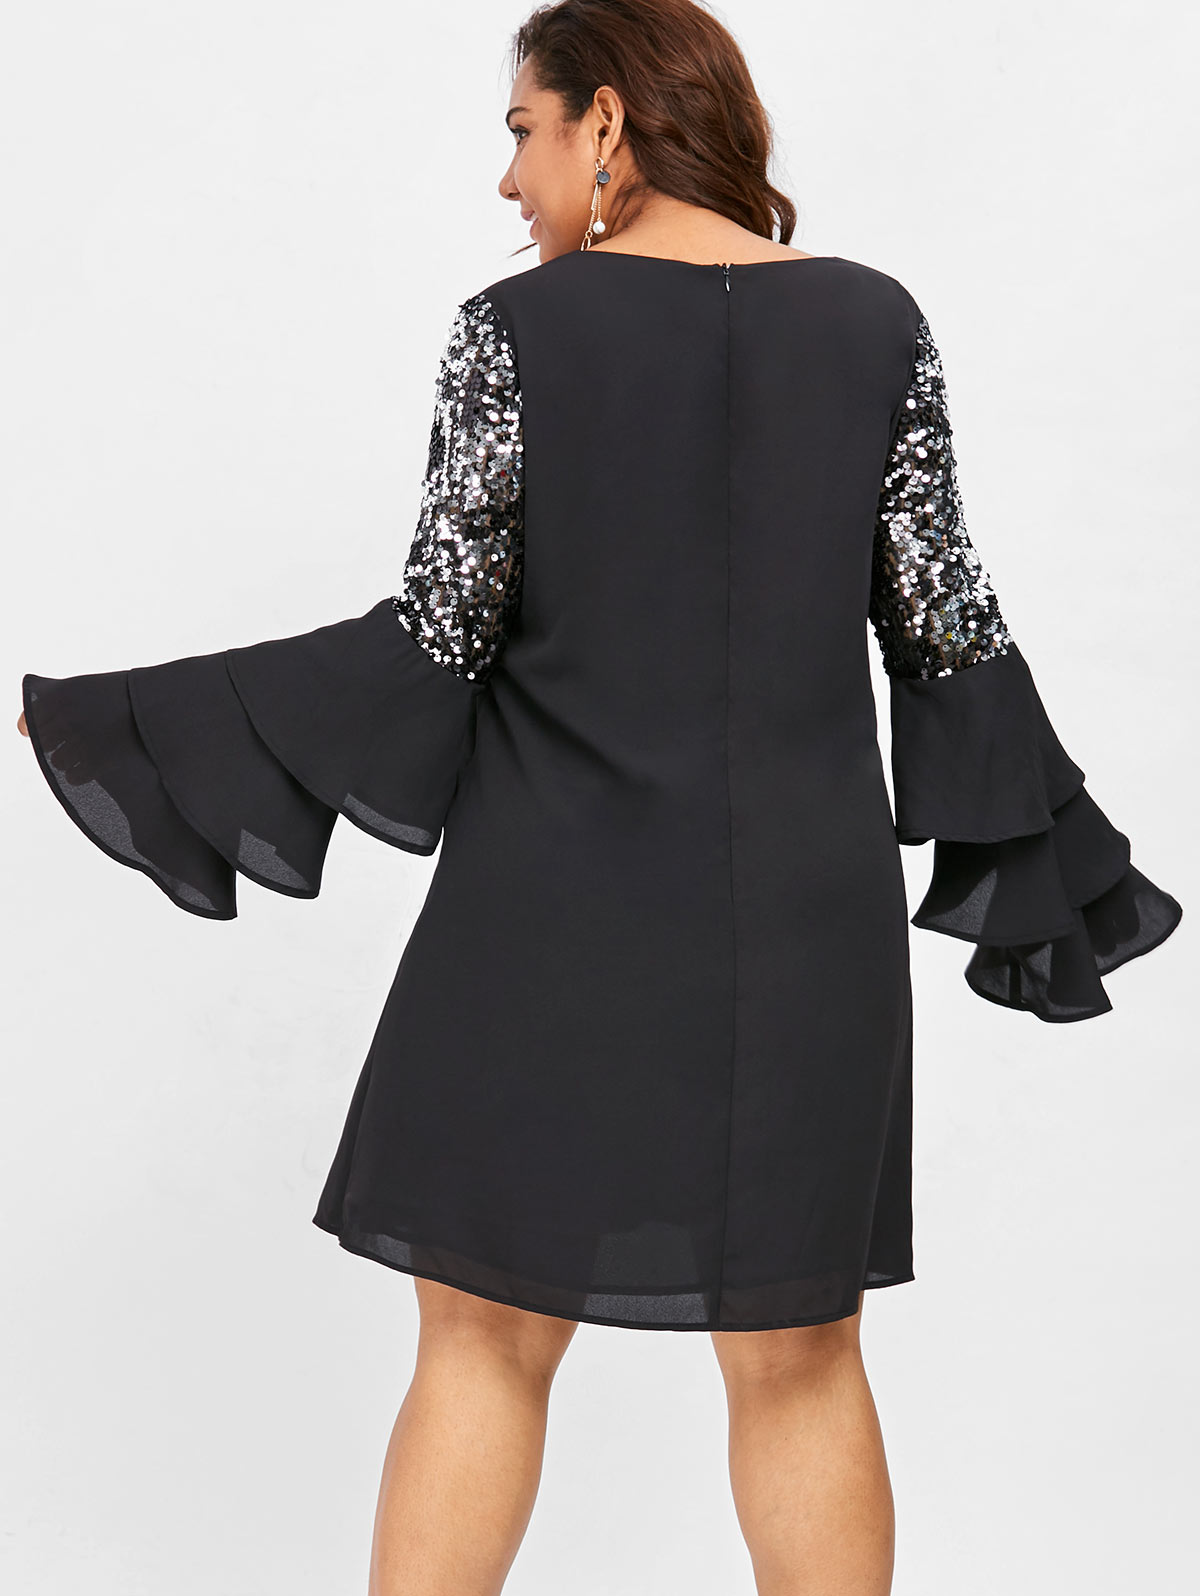 Material Polyester Silhouette Straight Dresses Length Mini Neckline V-Neck  Sleeve Length Long Sleeves Embellishment Sequins Pattern Type Solid Color 8f82cd288938